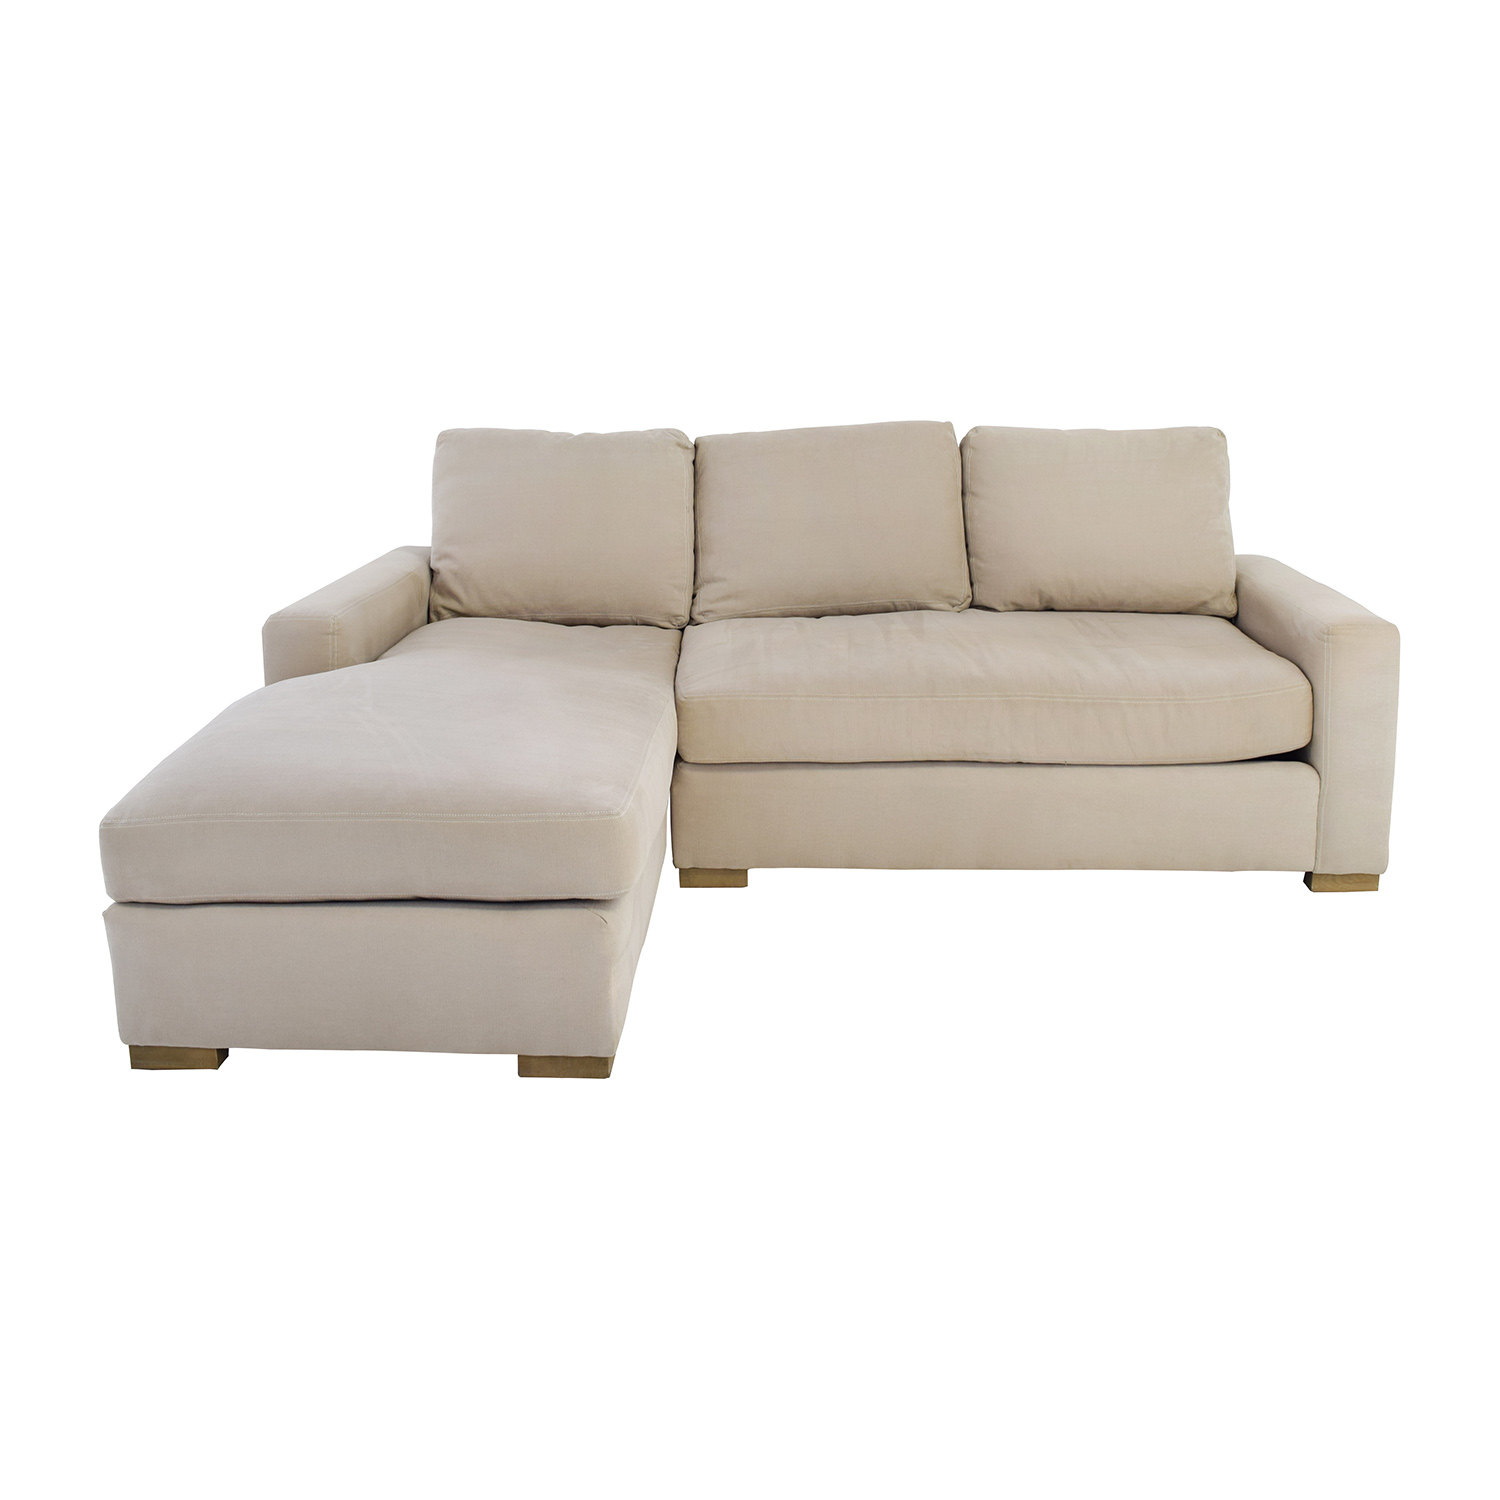 furn crate web piece reviews zoom wid sectional hero hei barrel and ii beige sofa axis